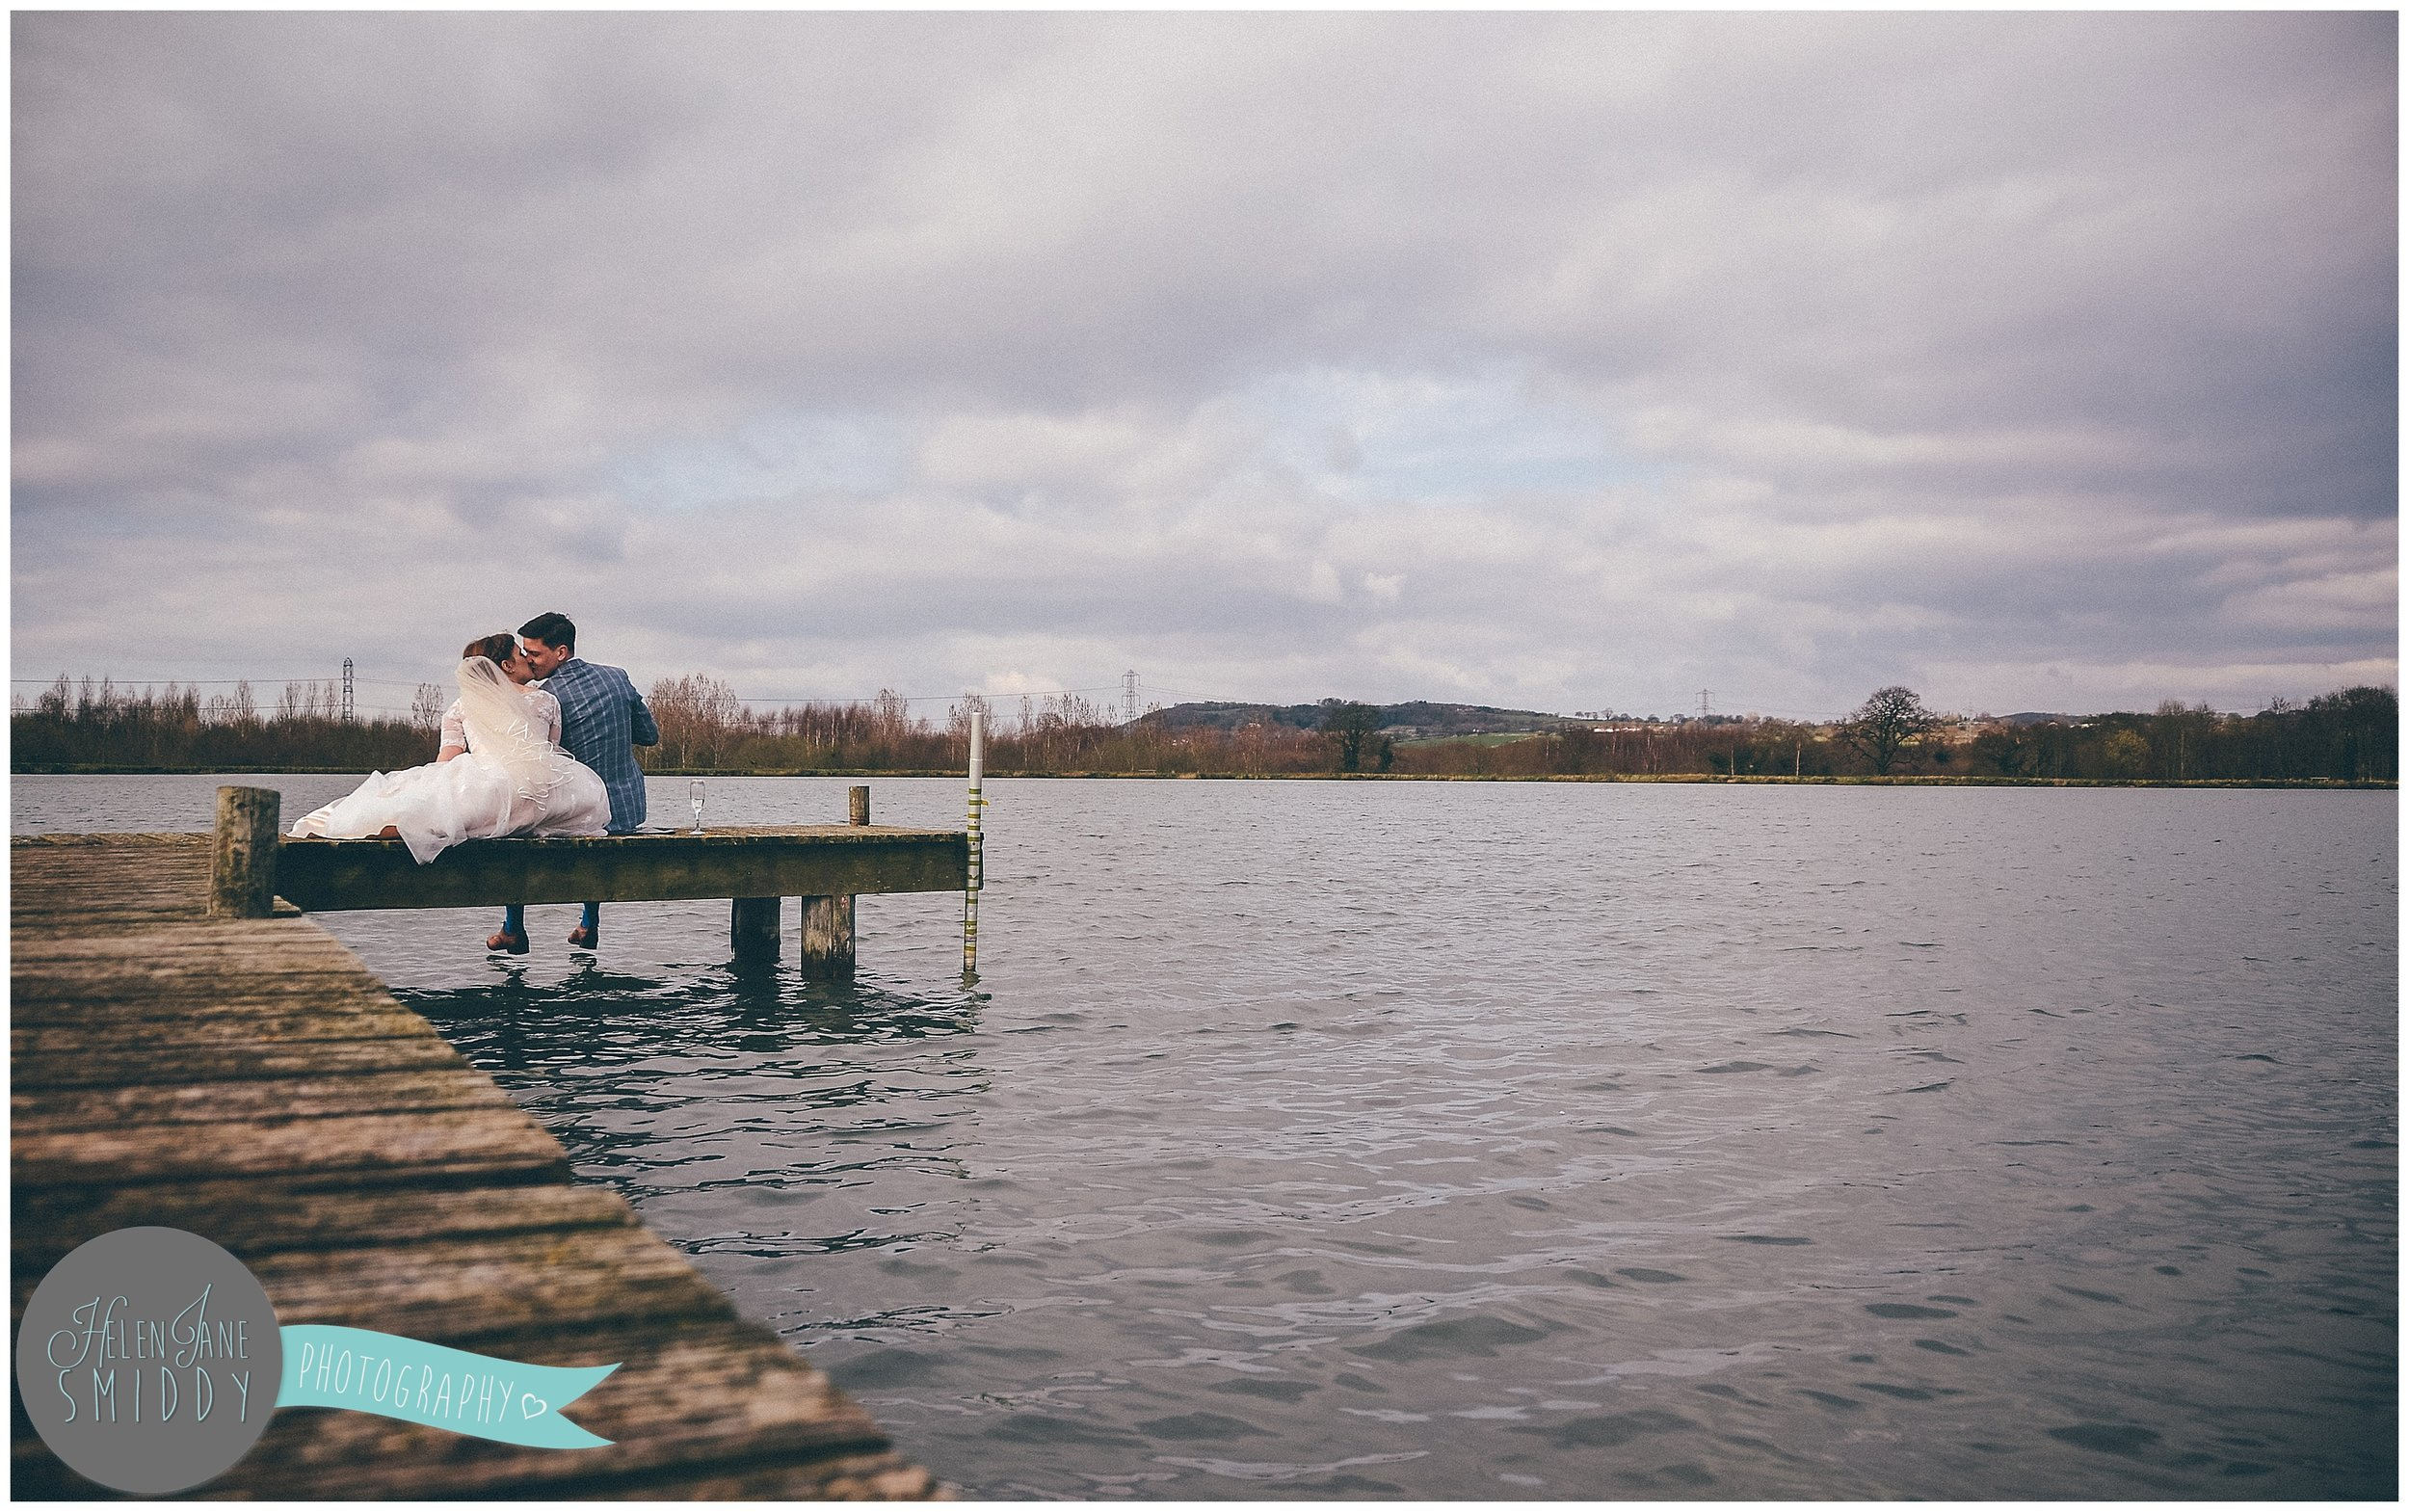 Manley Mere has a cute jetty for the newlyweds to sit on together.